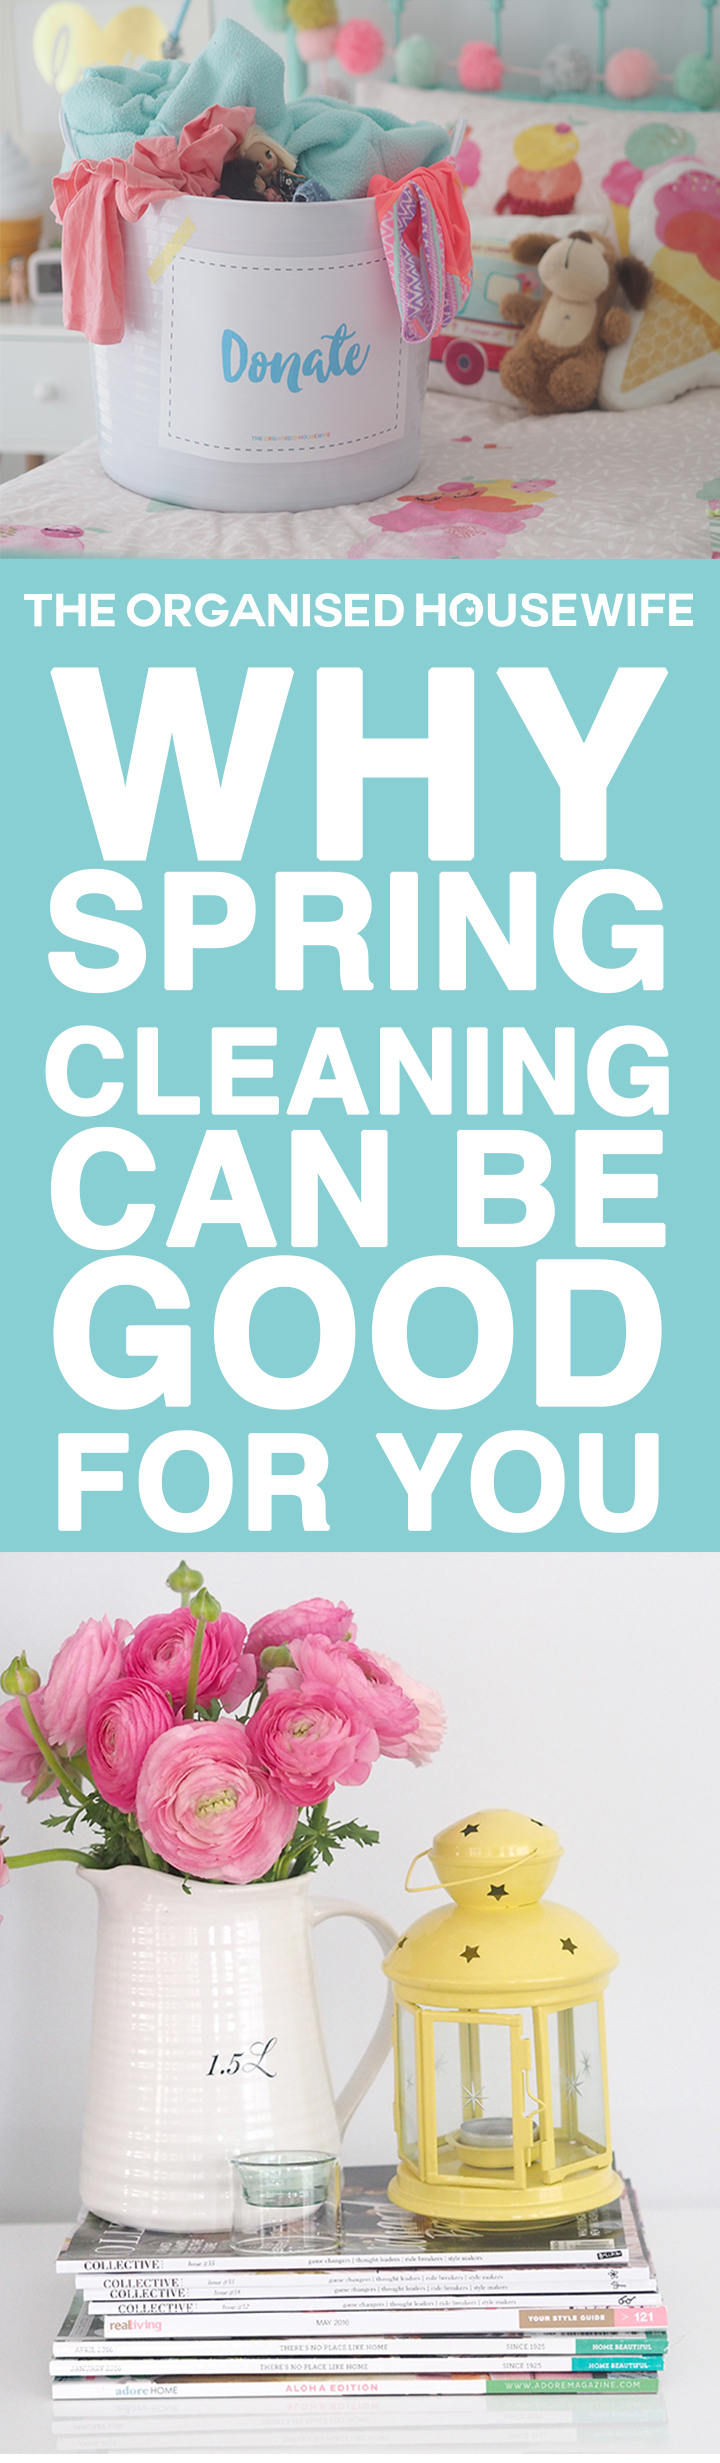 Spring Cleaning... increase space, decrease anxiety and stress, encourage creativity, boost your mood and welcome the new season in a positive and meaningful way.